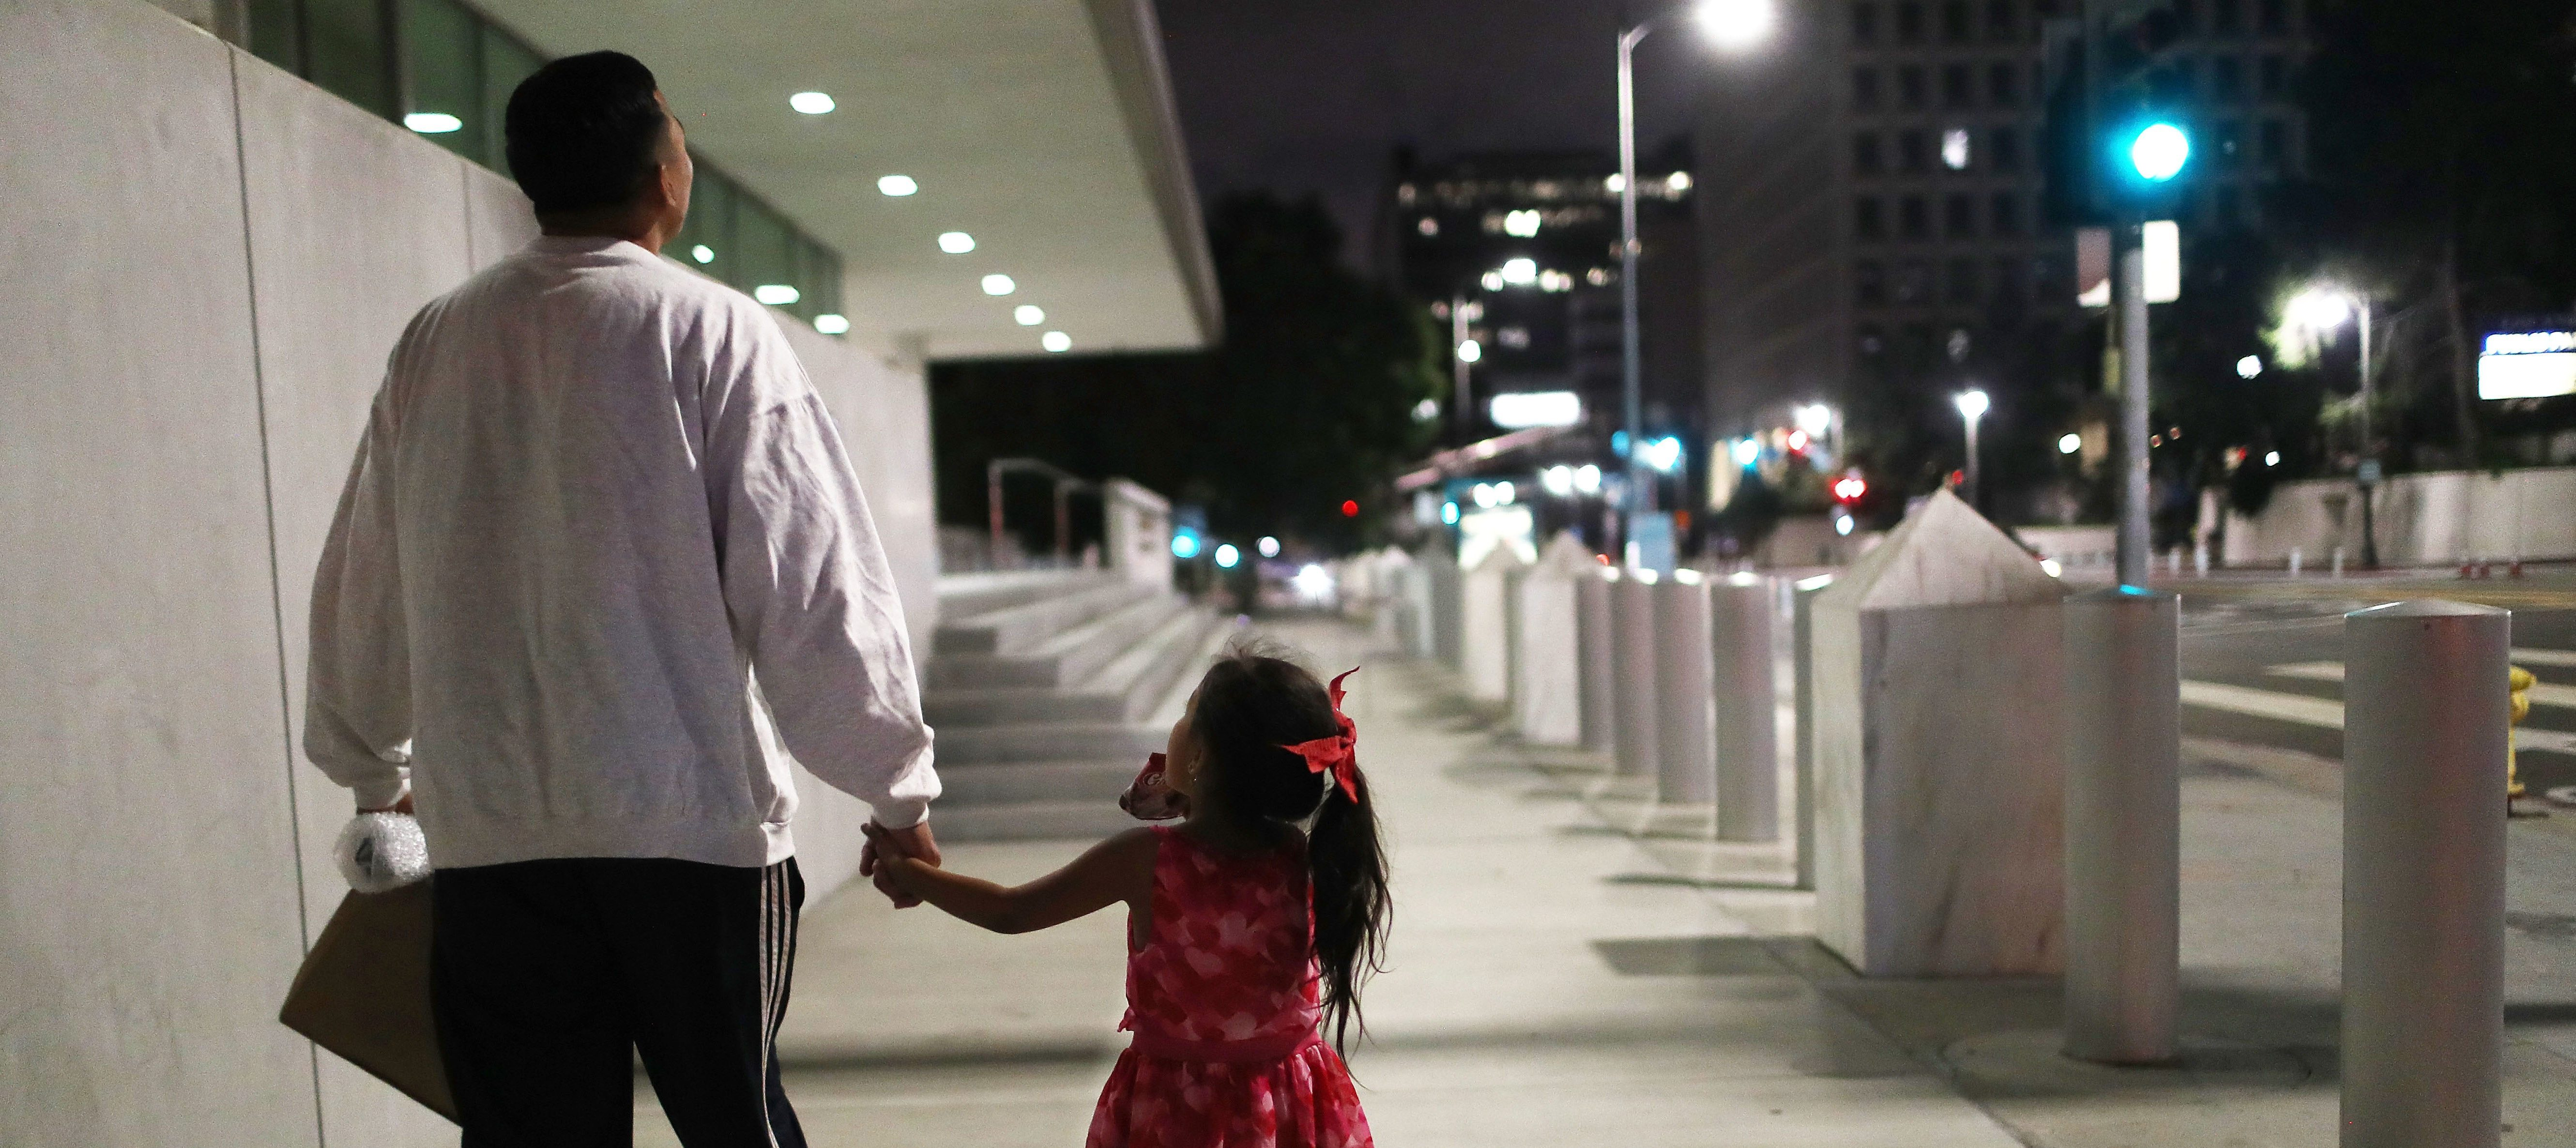 Honduran Immigrant Detained By ICE Released After 6 Months In Custody